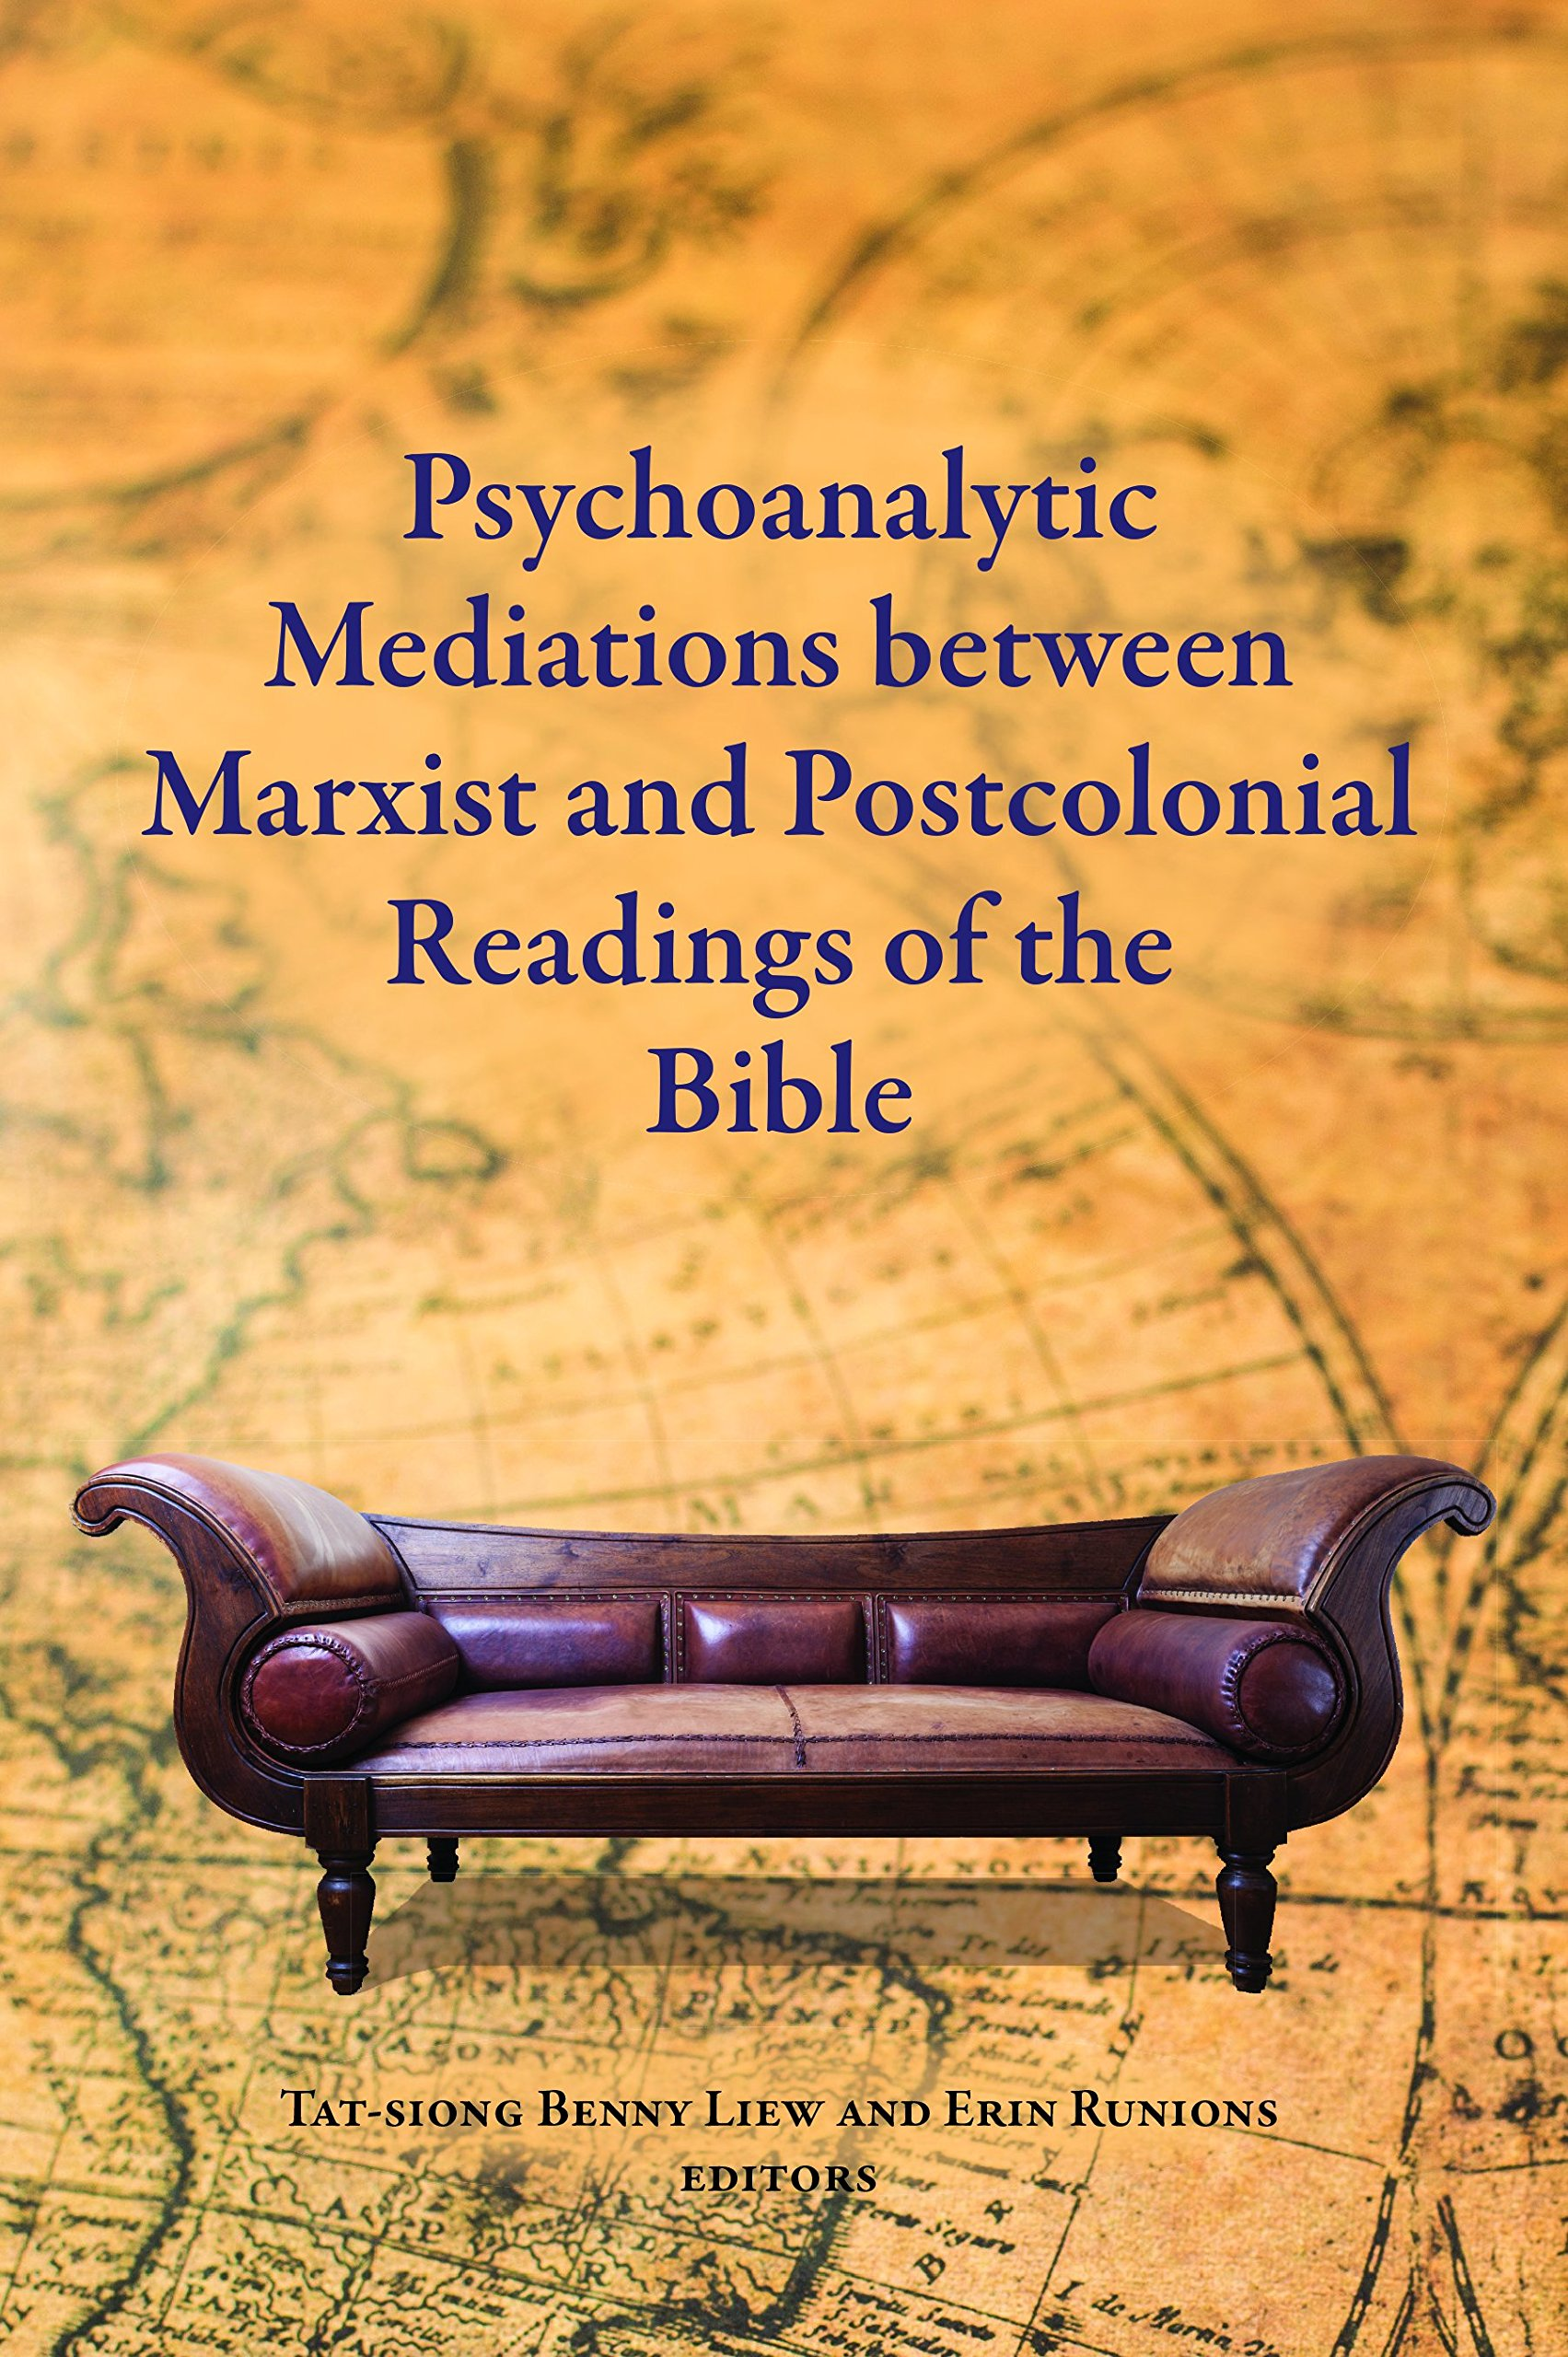 Psychoanalytic Mediations Between Marxist And Postcolonial Readings Of The  Bible (Semeia Studies): Tat Siong Benny Liew, Erin Runions: 9780884141679:  ...